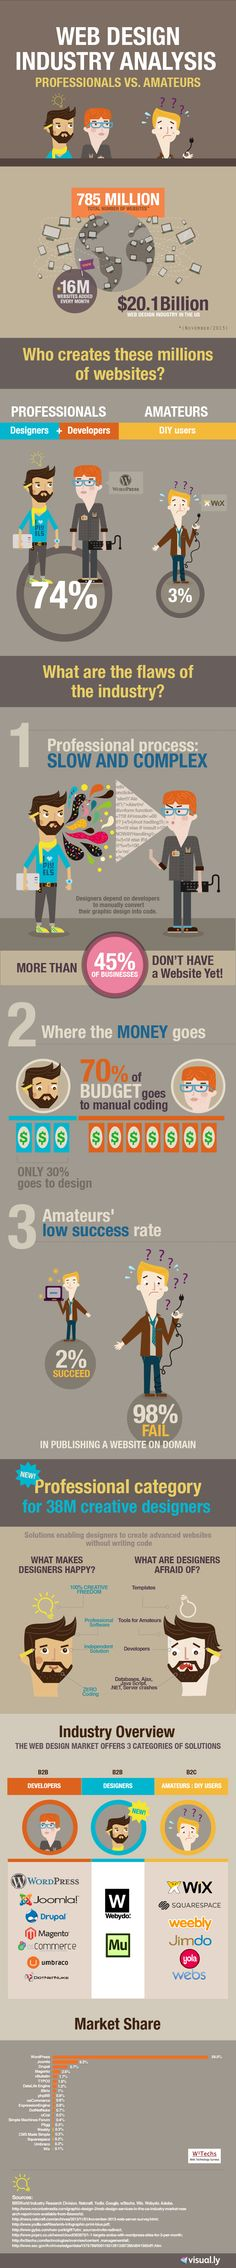 Web design industry Infographic